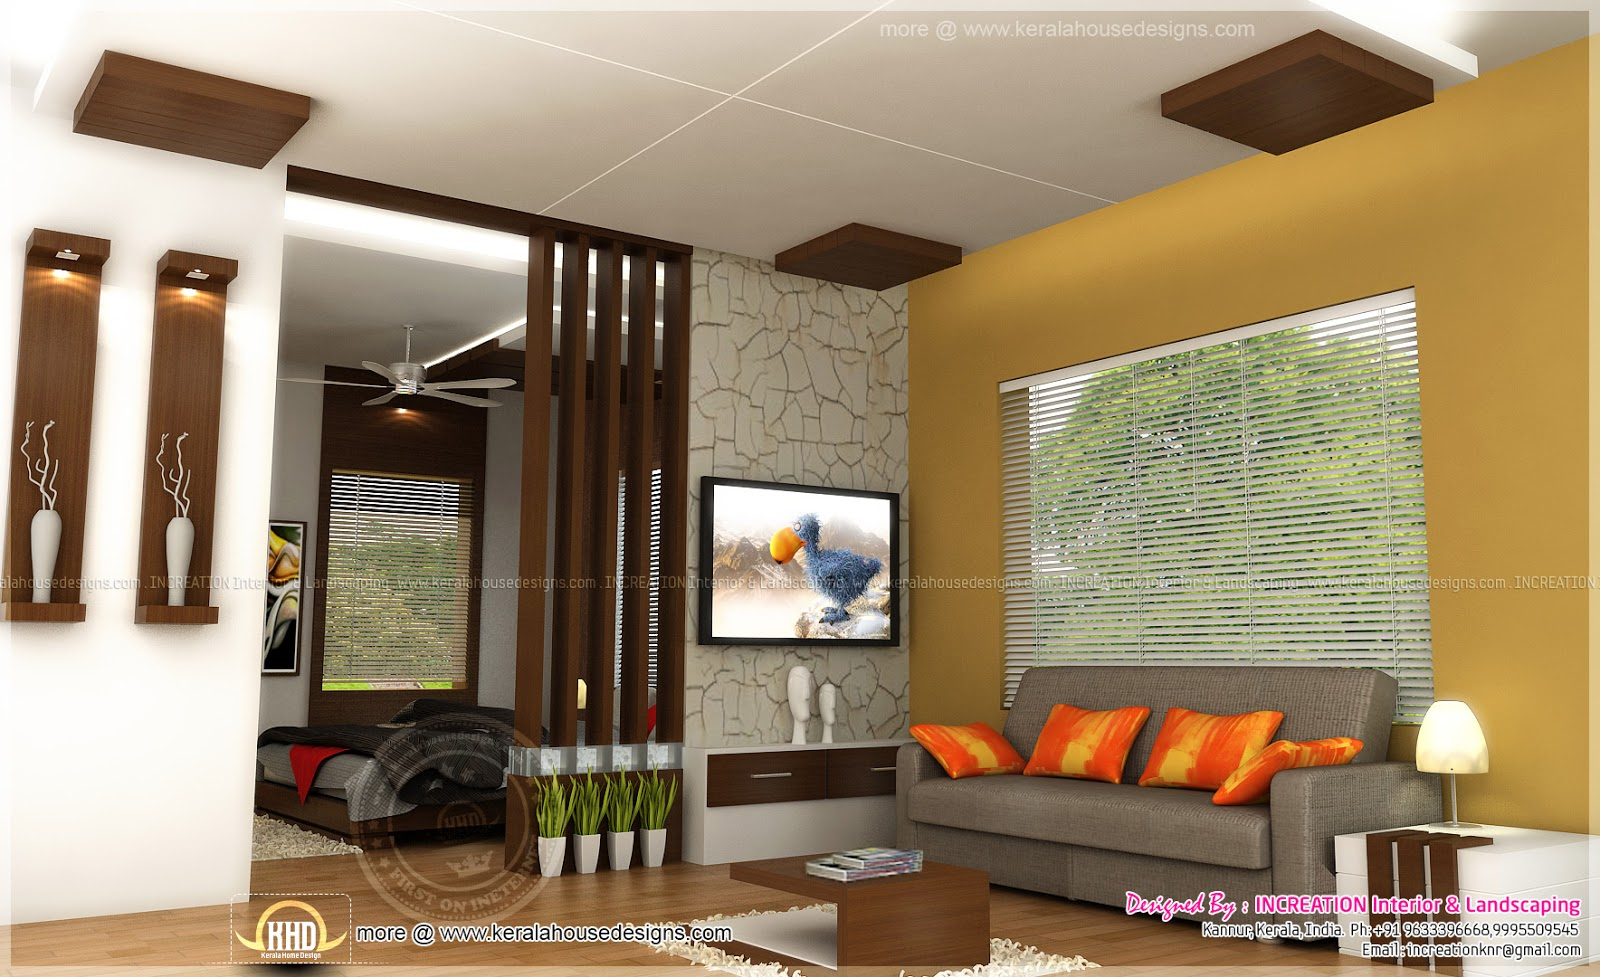 Interior designs from kannur kerala kerala home design for Interior design for living room and bedroom